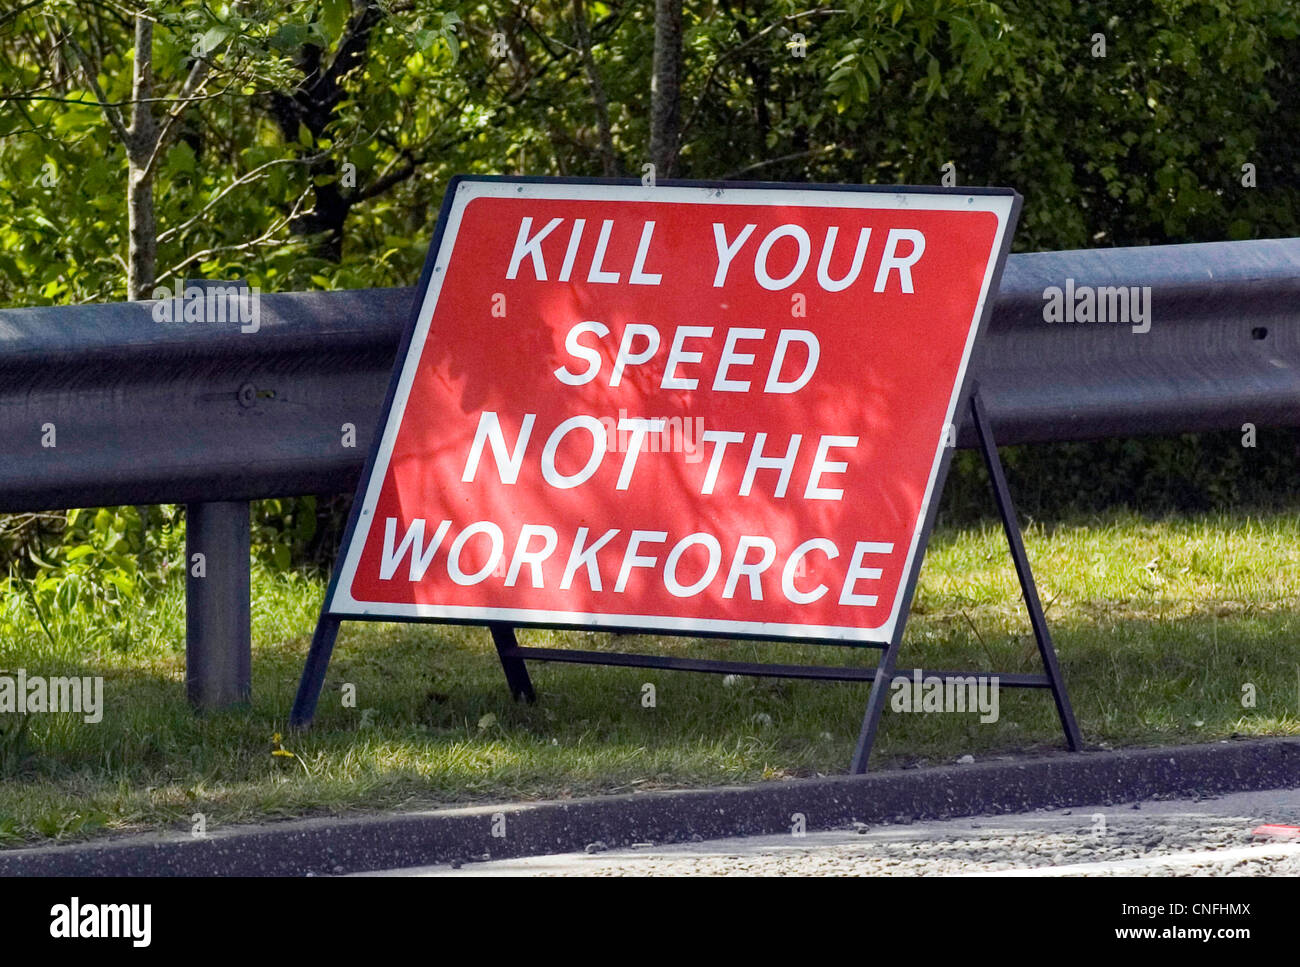 Kill your speed not the workforce